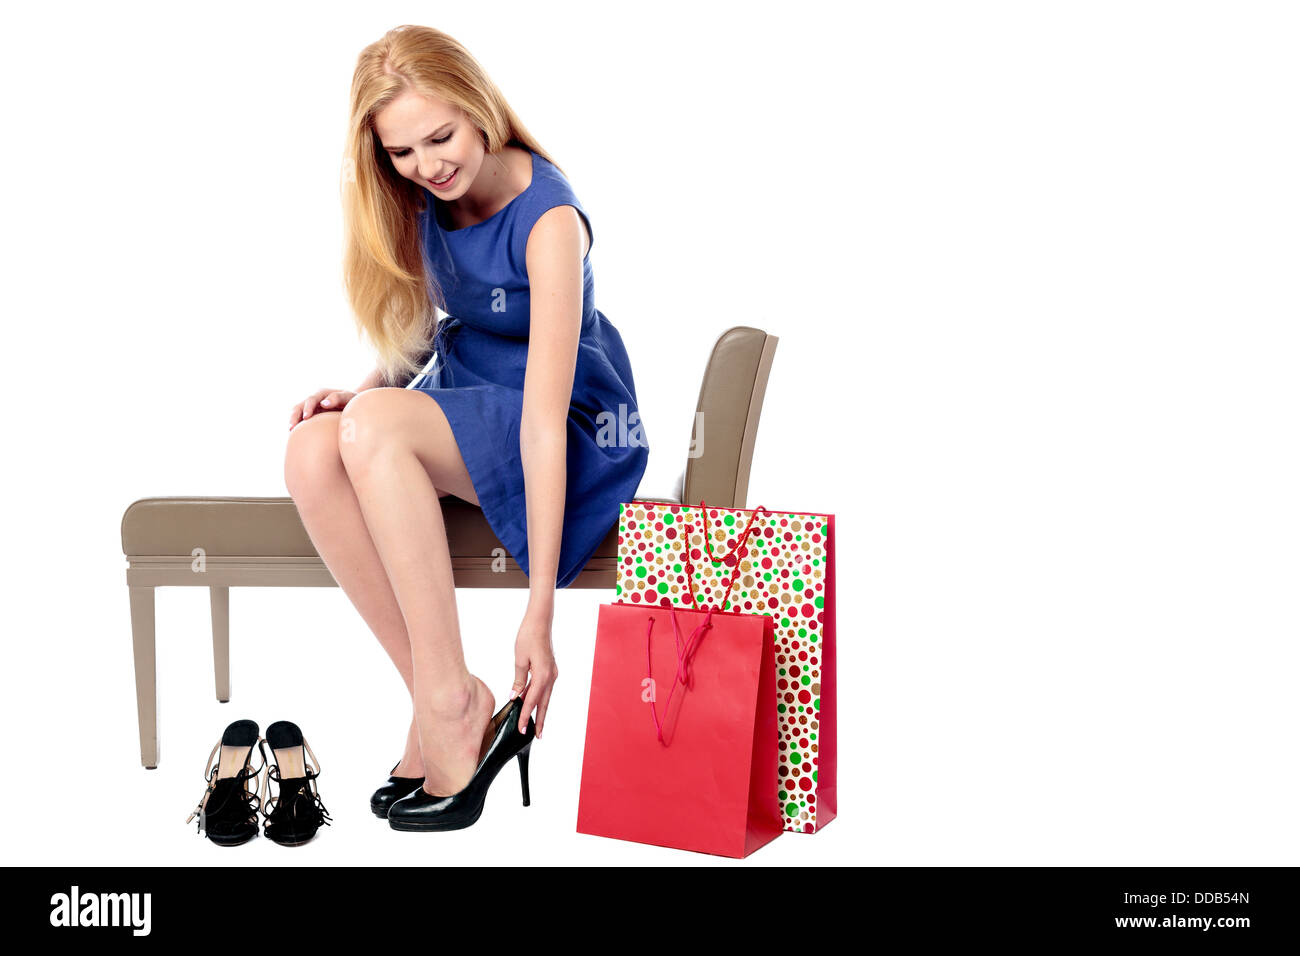 Glamorous young woman trying on a pair of stylish high heel shoes while out shopping in a store with colourful shopping - Stock Image